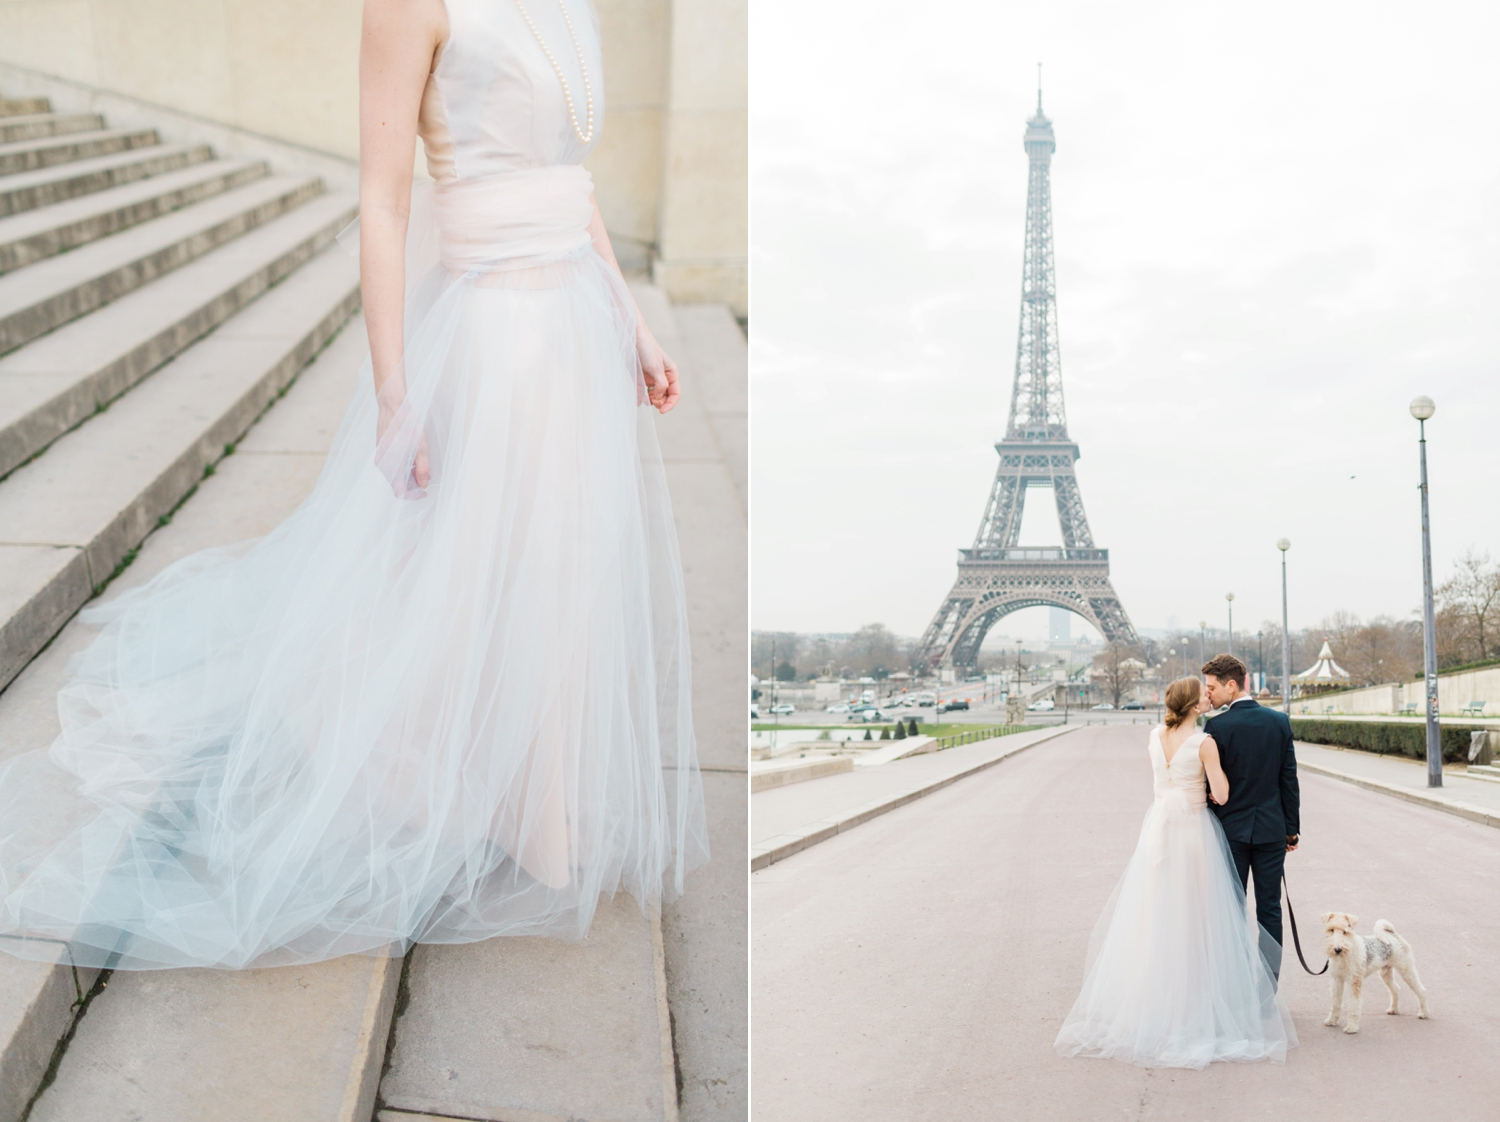 Paris-France-Wedding-Photography-Chloe-Luka-Photography_7666.jpg